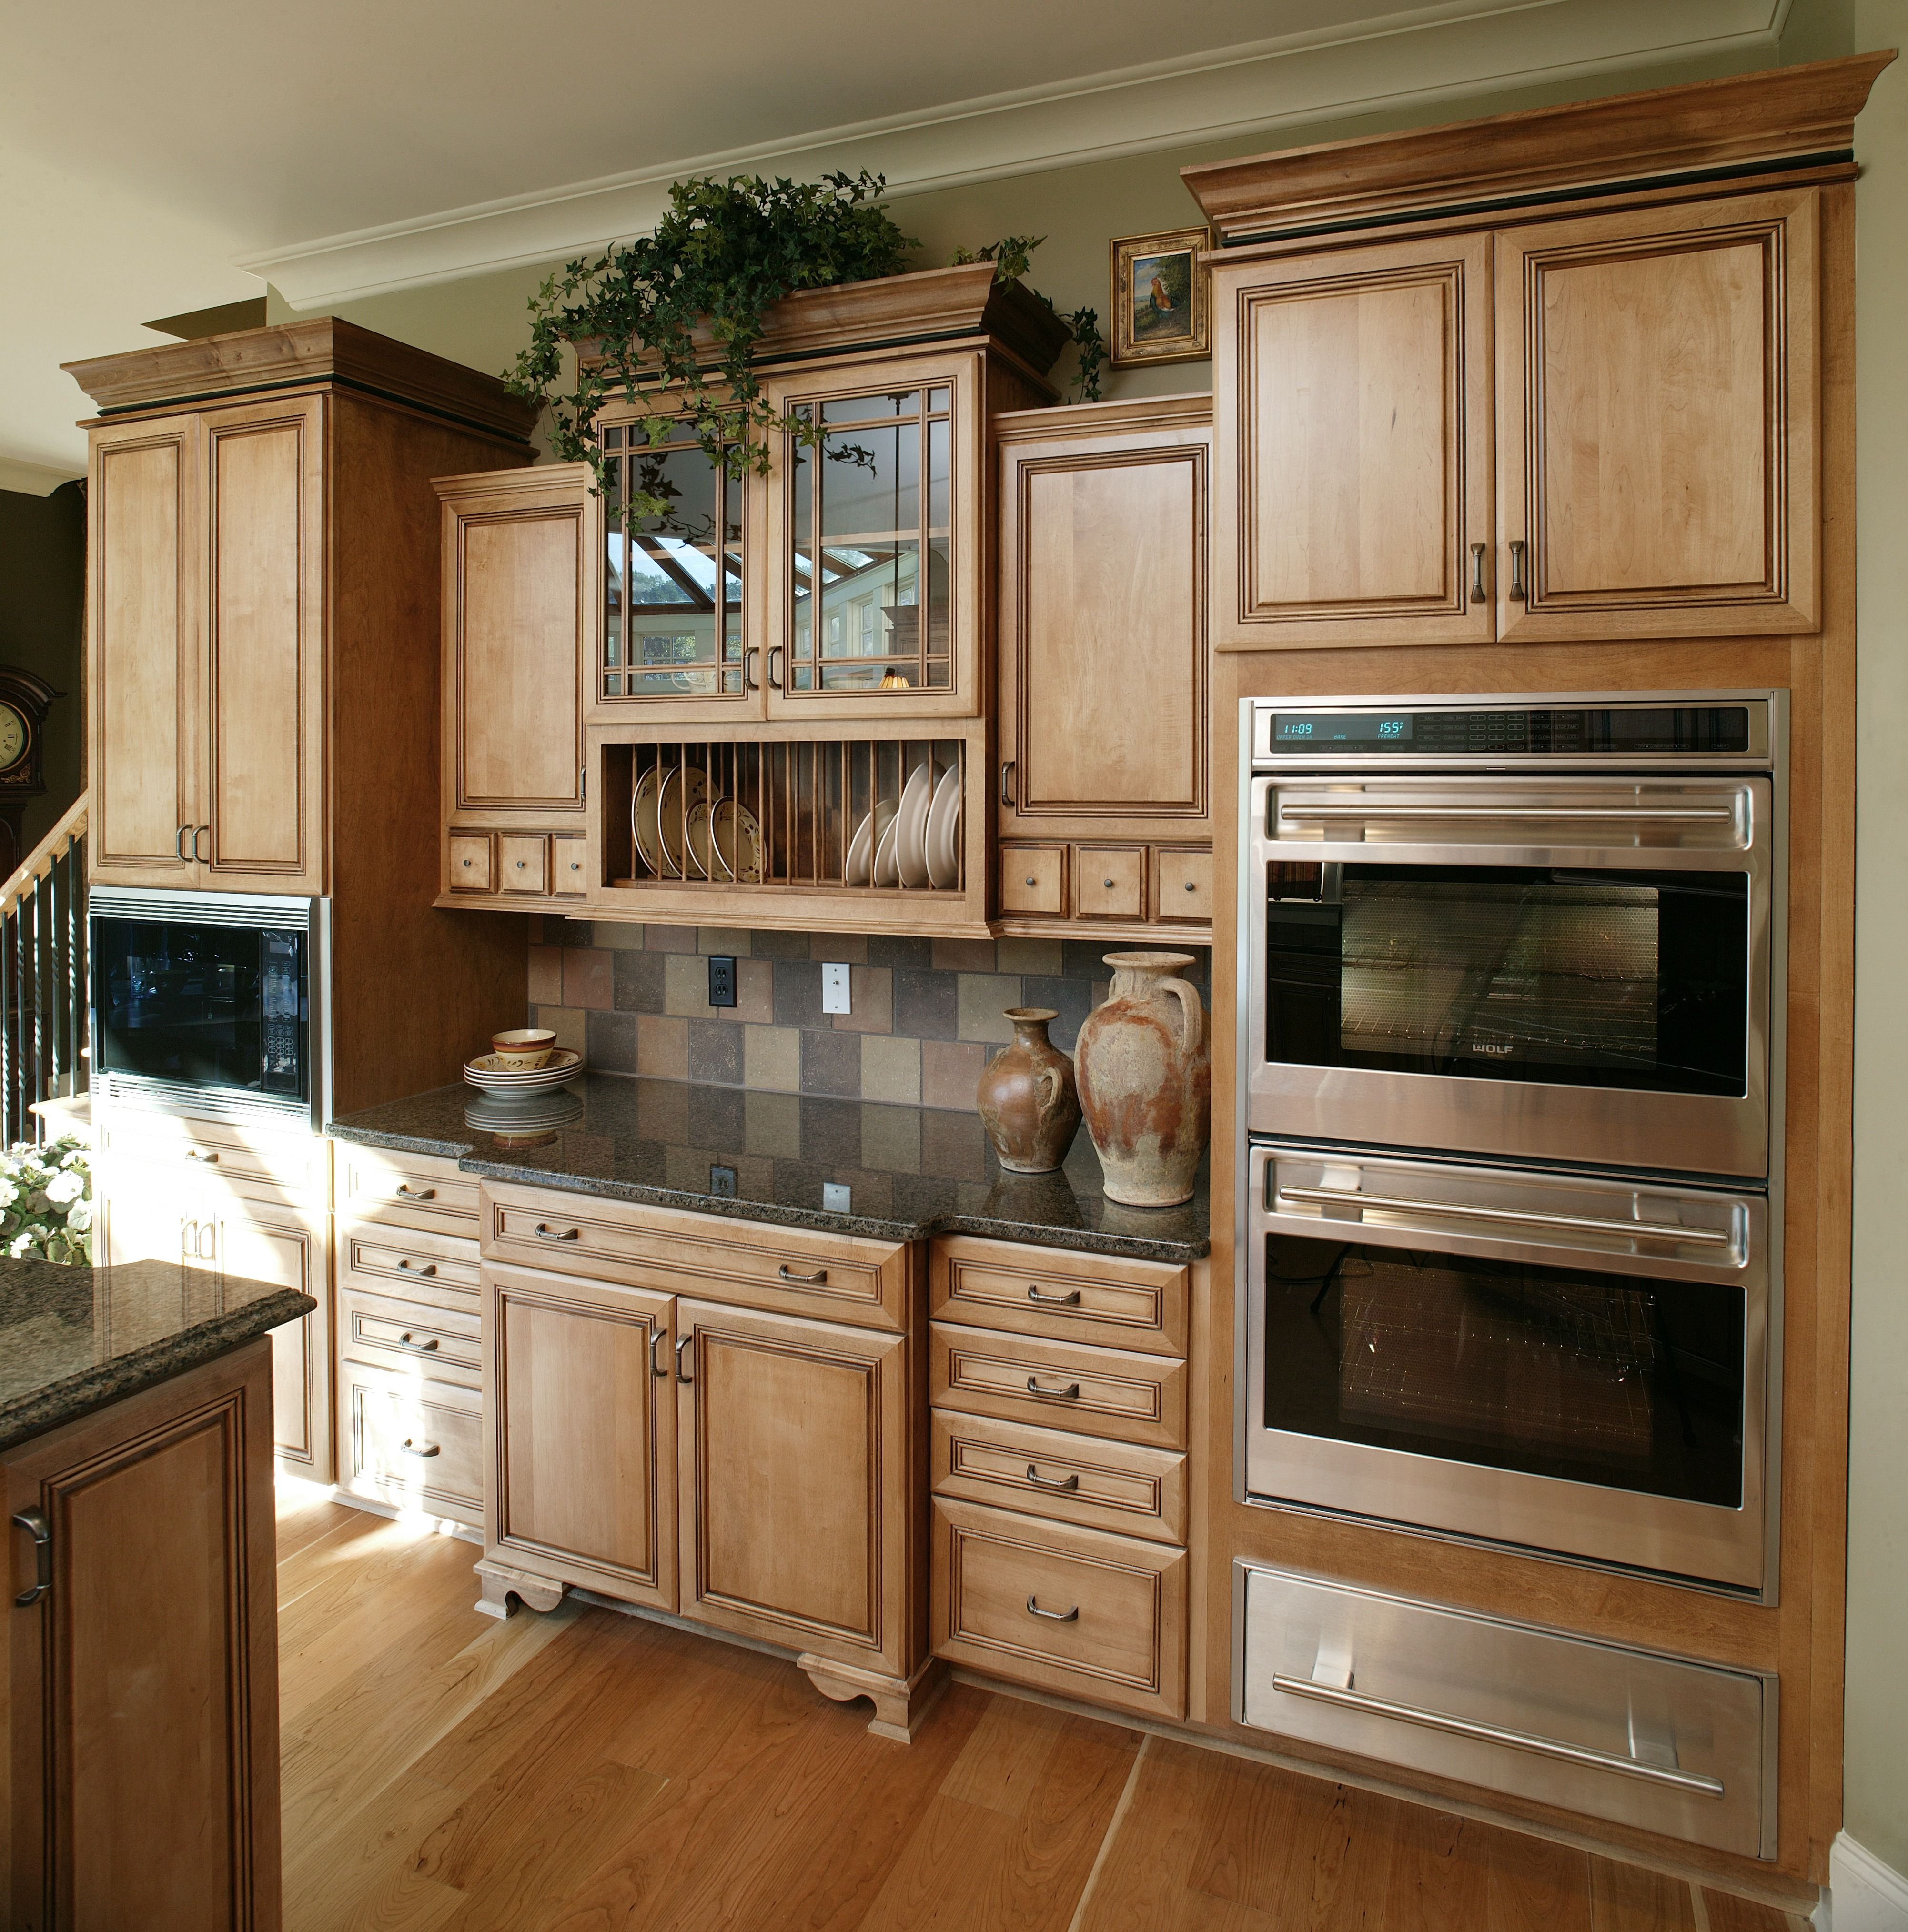 Wood, wood and more wood for this traditional kitchen ...